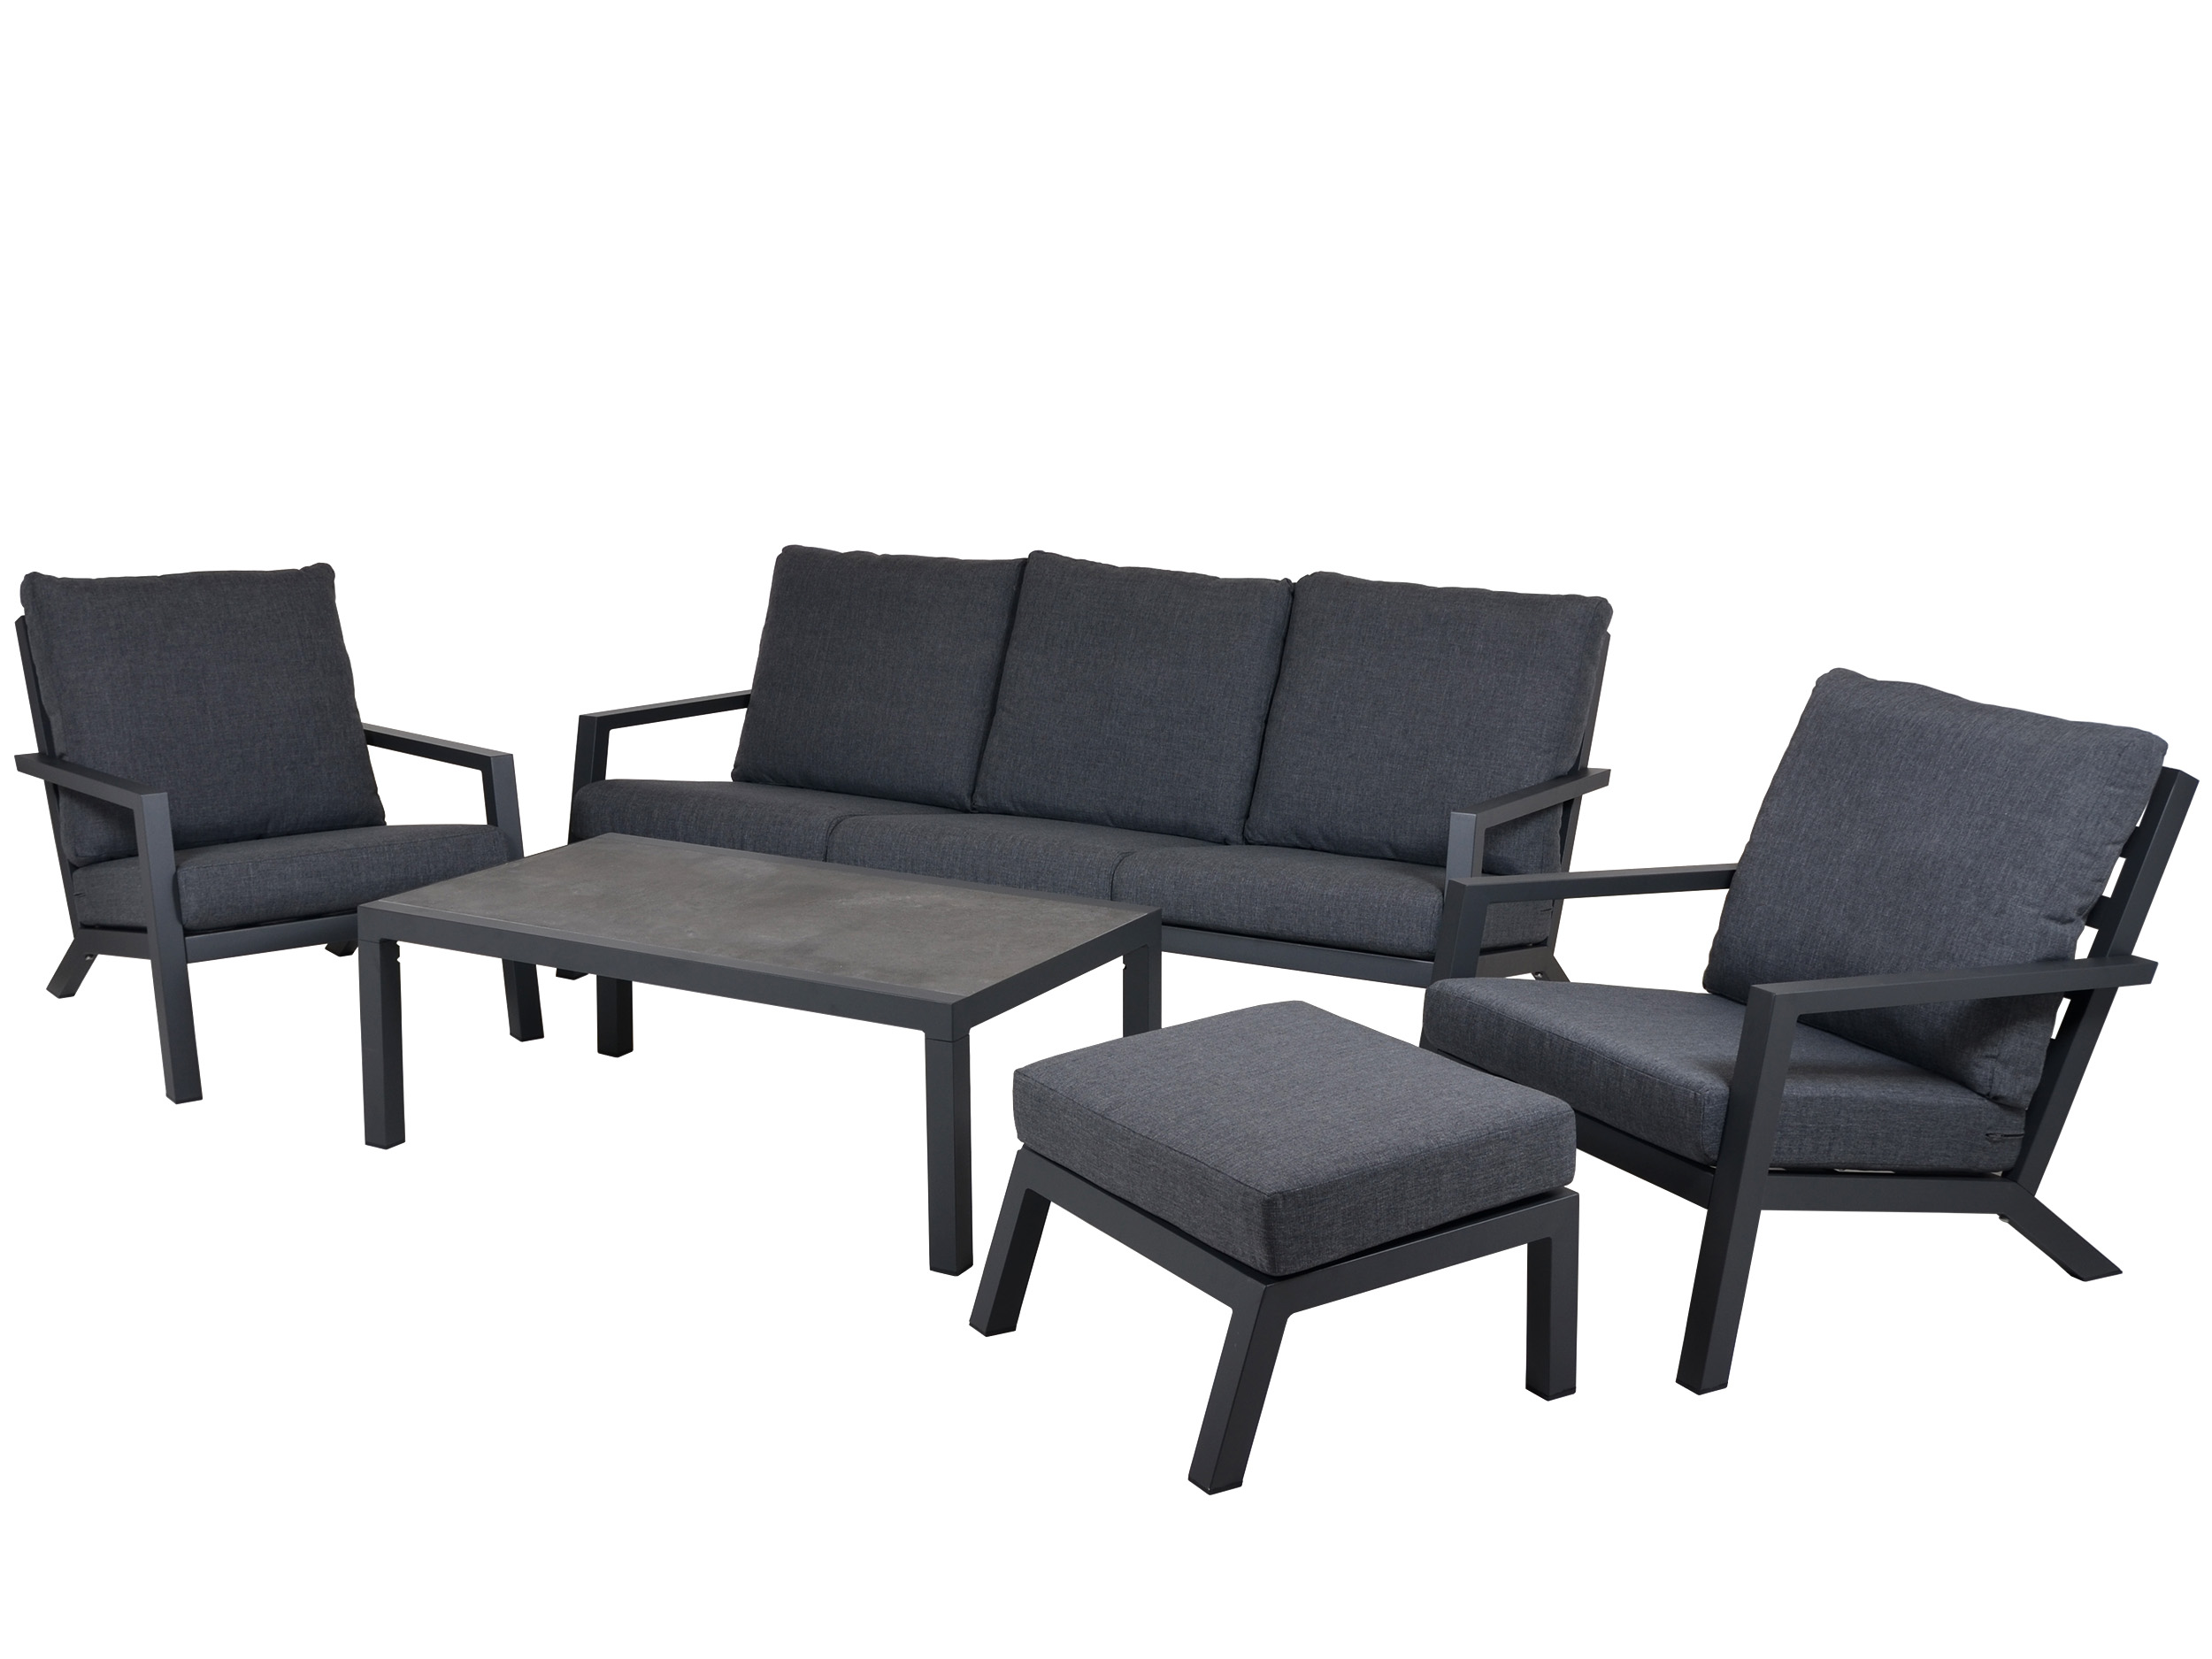 aluminium garten lounge set 5 teilig gartenm bel l nse. Black Bedroom Furniture Sets. Home Design Ideas